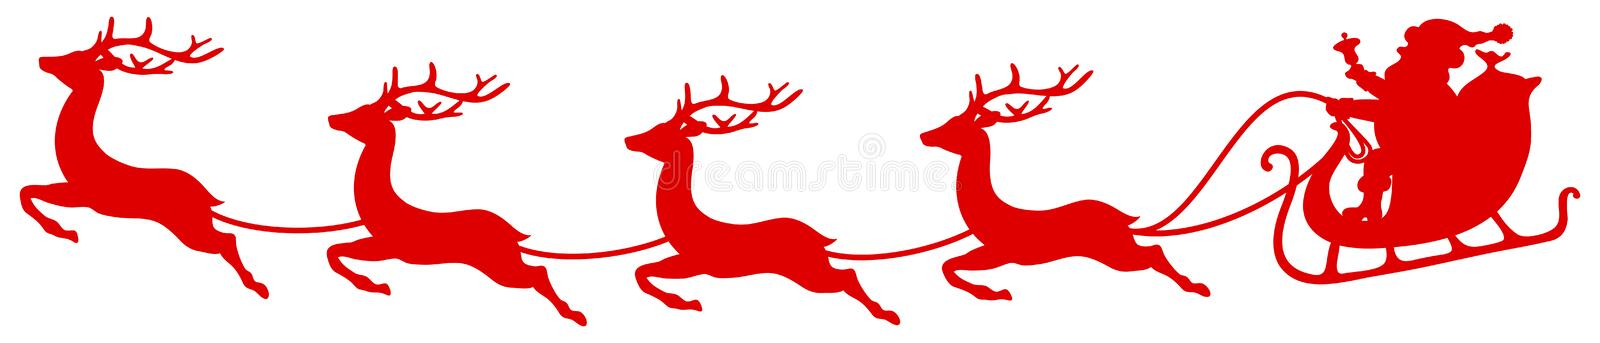 Red Christmas Sleigh Santa And Four Flying Reindeers Bent. Red Flying Christmas Sleigh Santa And Four Flying Reindeers Bent royalty free illustration